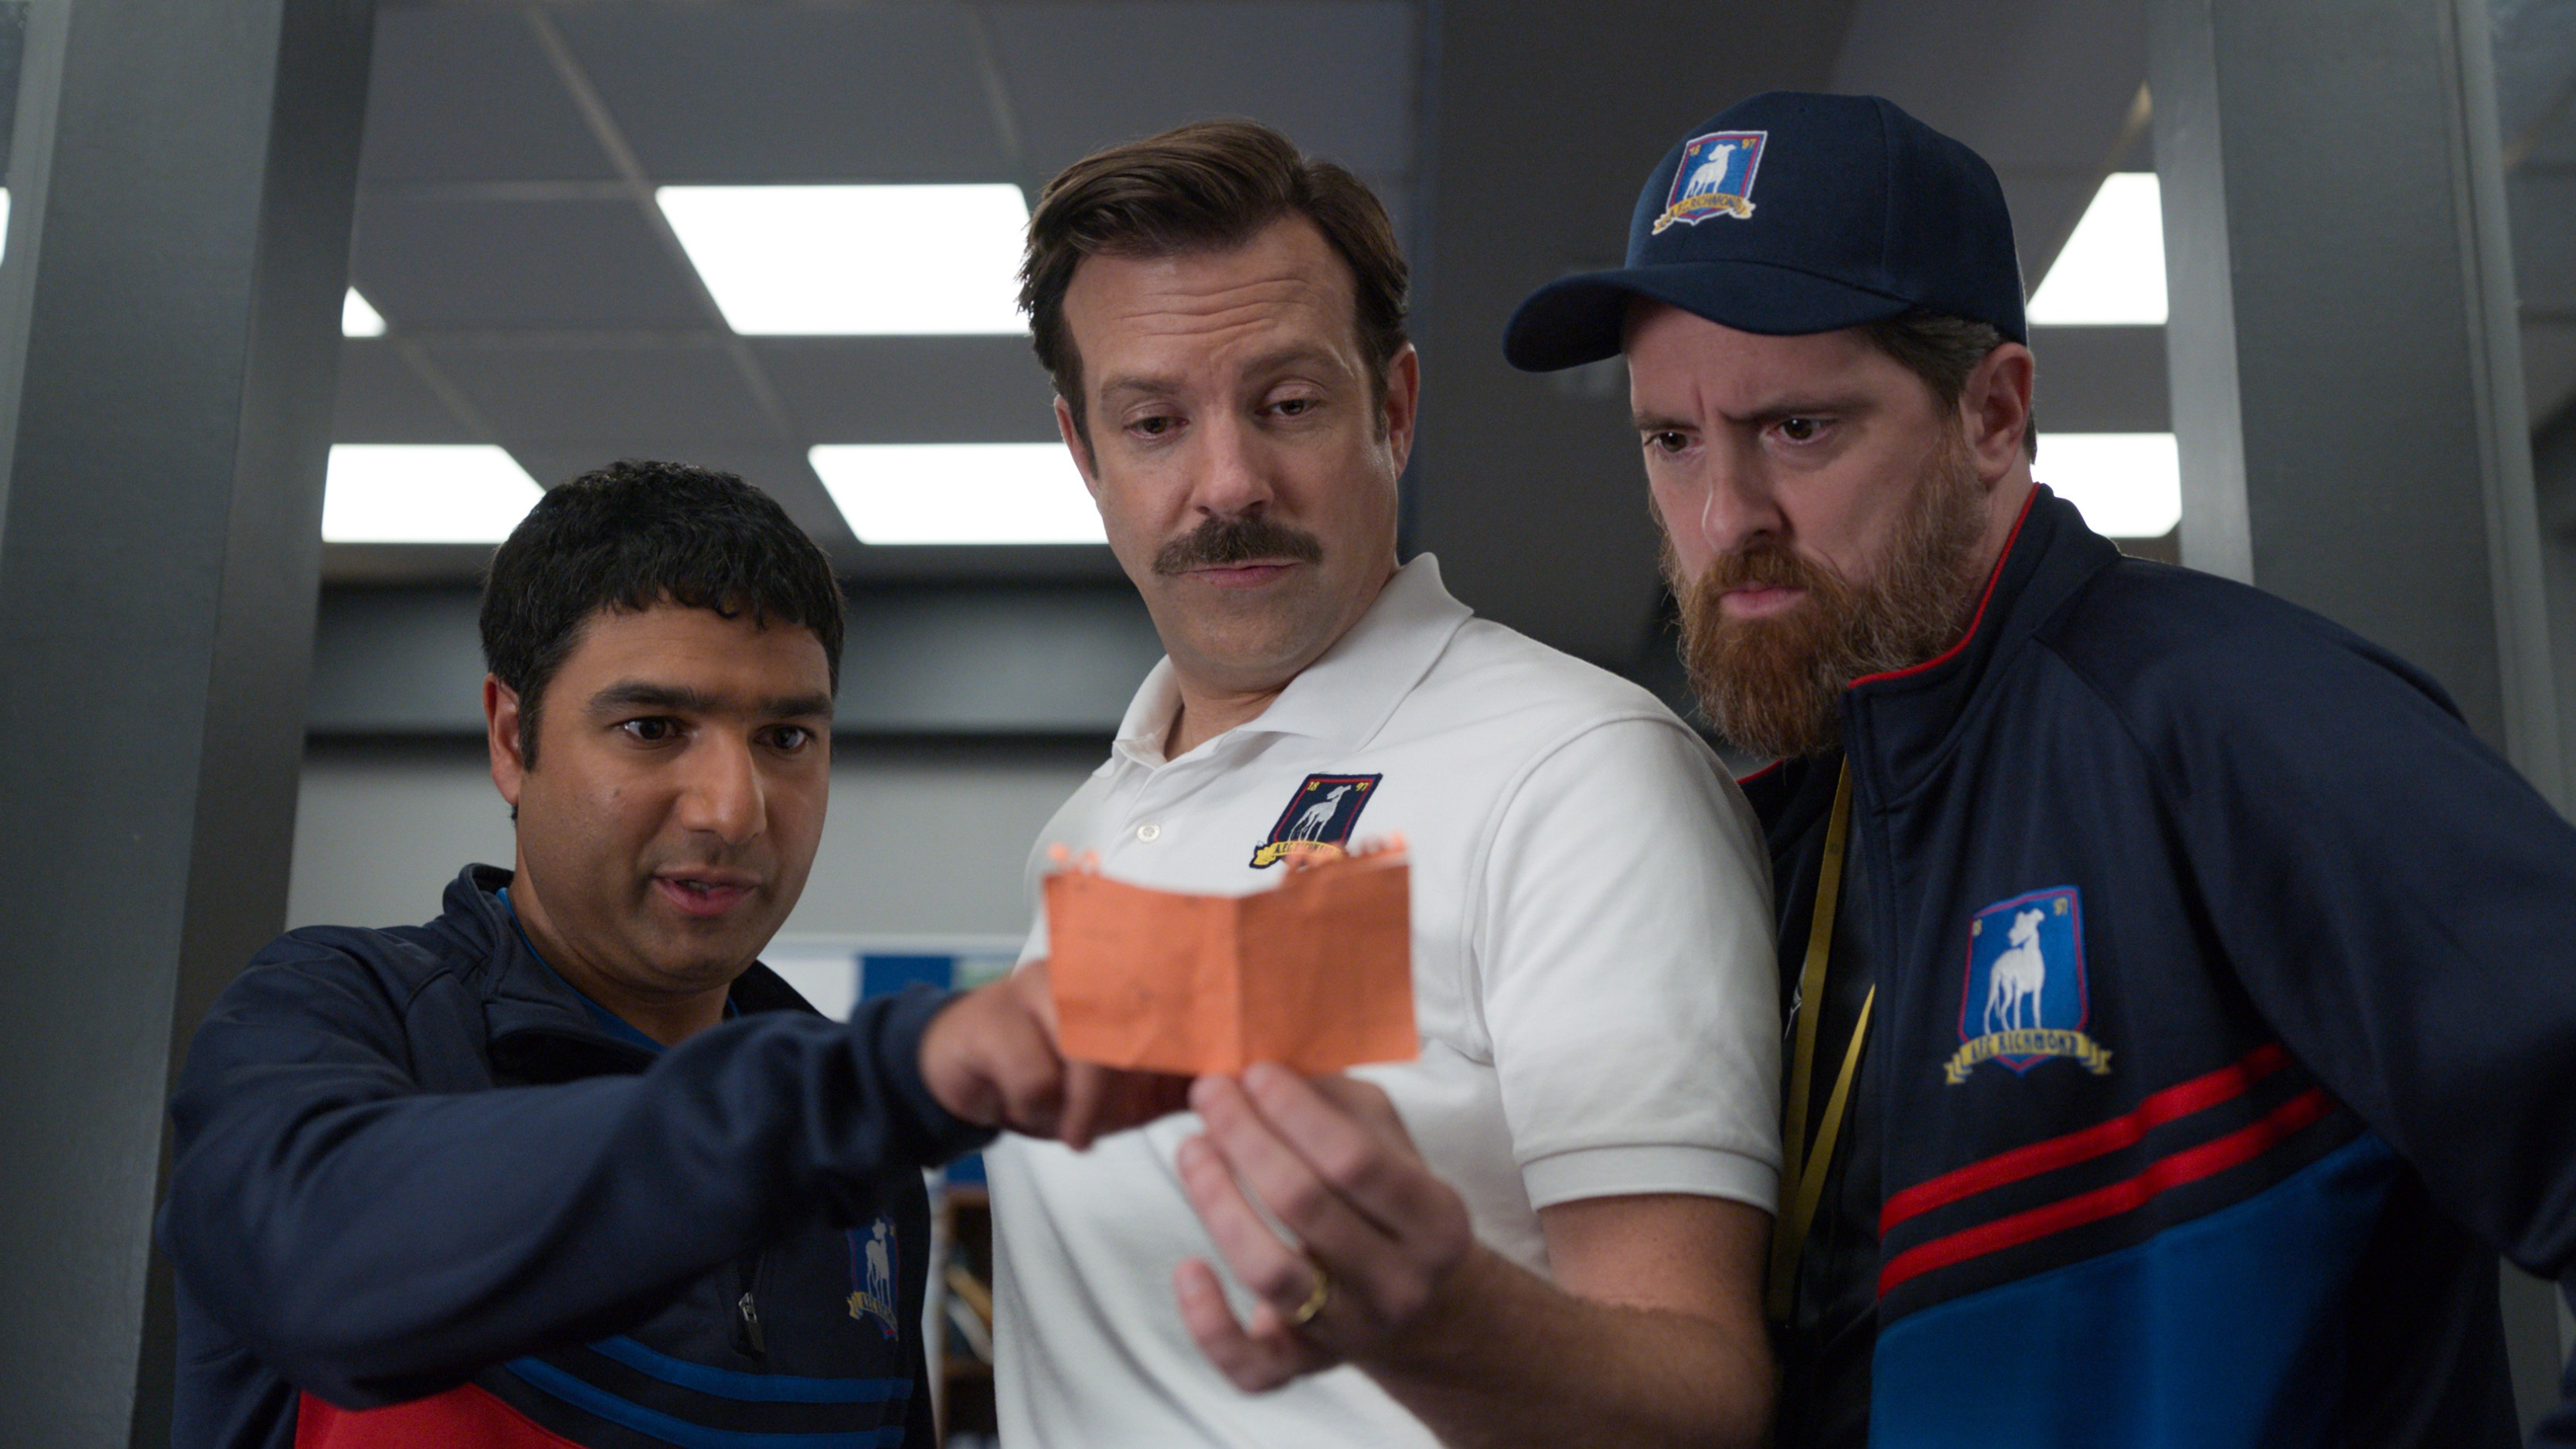 Nick Mohammed, Jason Sudeikis, and Brendan Hunt will be in Ted Lasso season 3